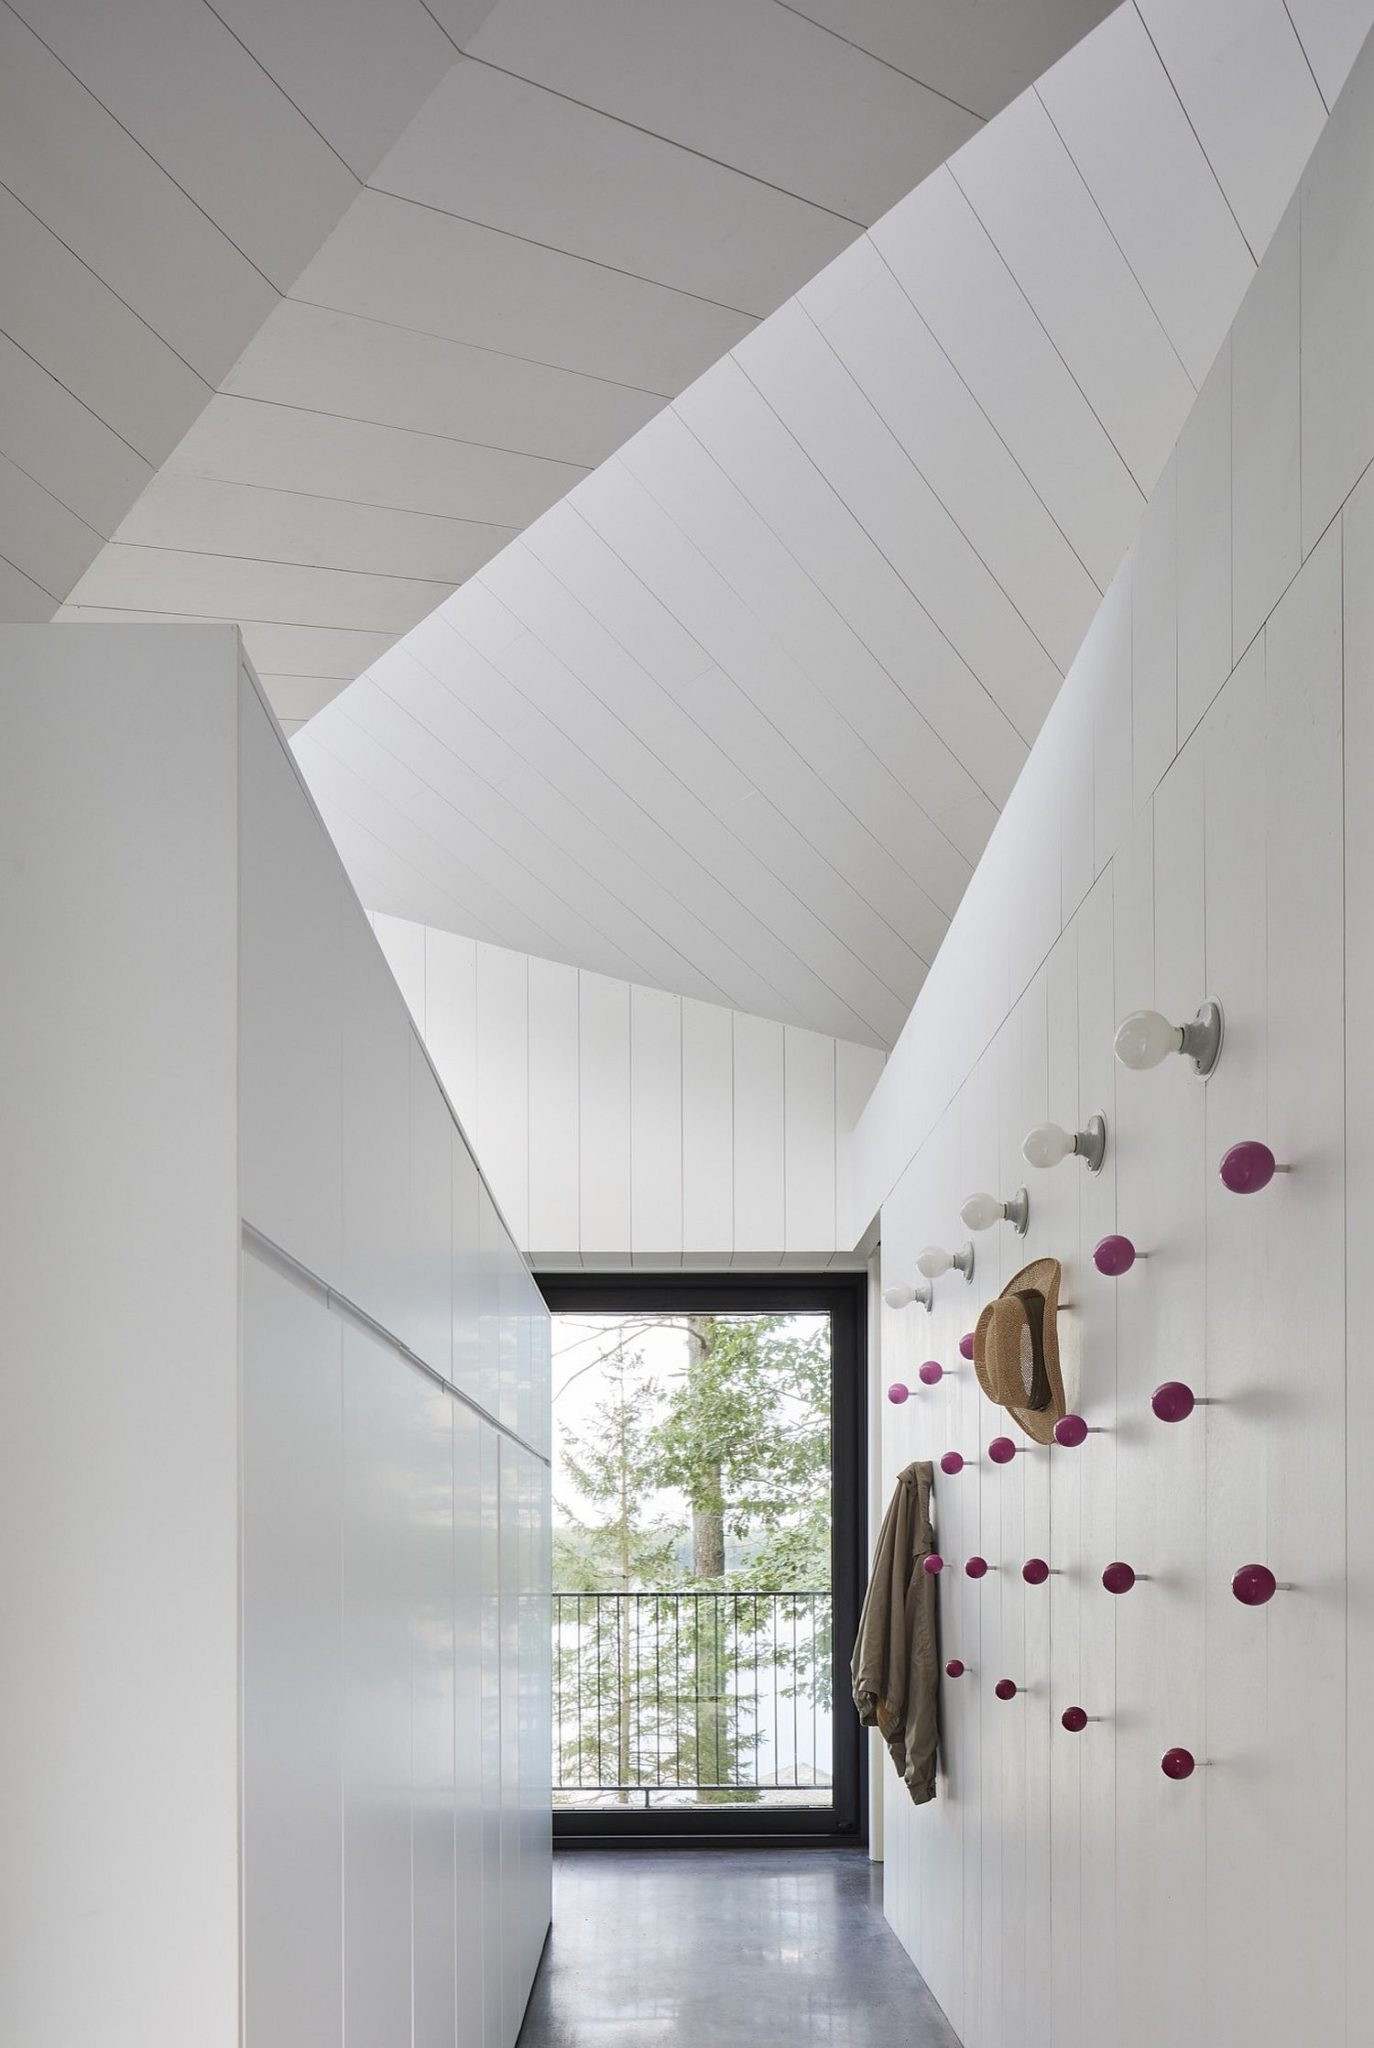 Simple and minimal coat hanger system in the hallway